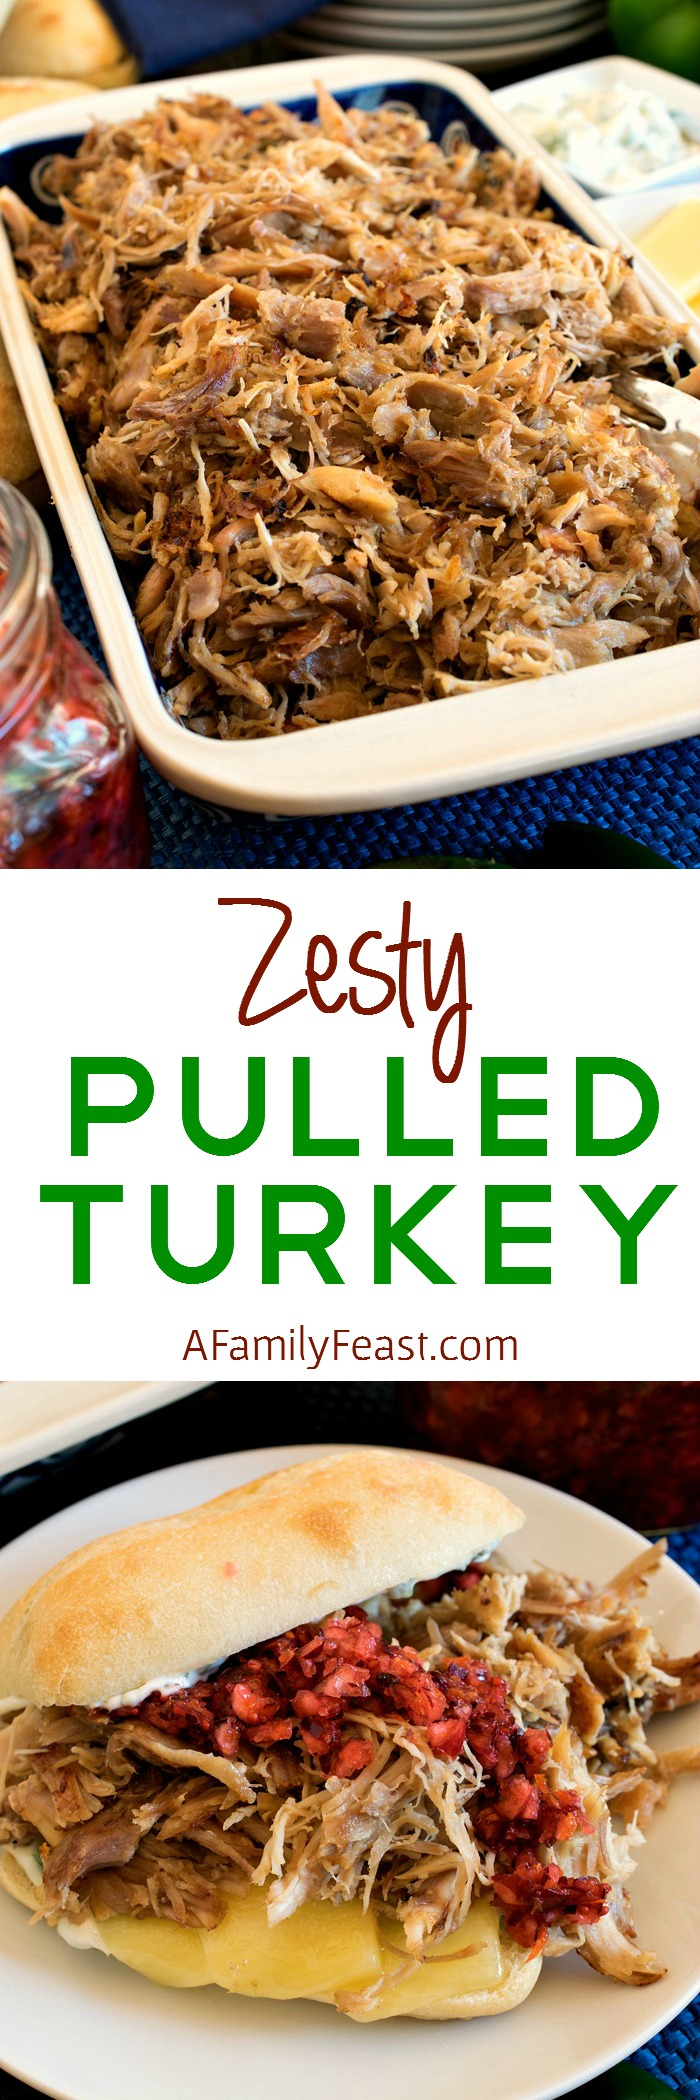 Zesty Pulled Turkey - A delicious recipe made with leftover turkey. Use on sliders, in tacos, quesadillas and more!